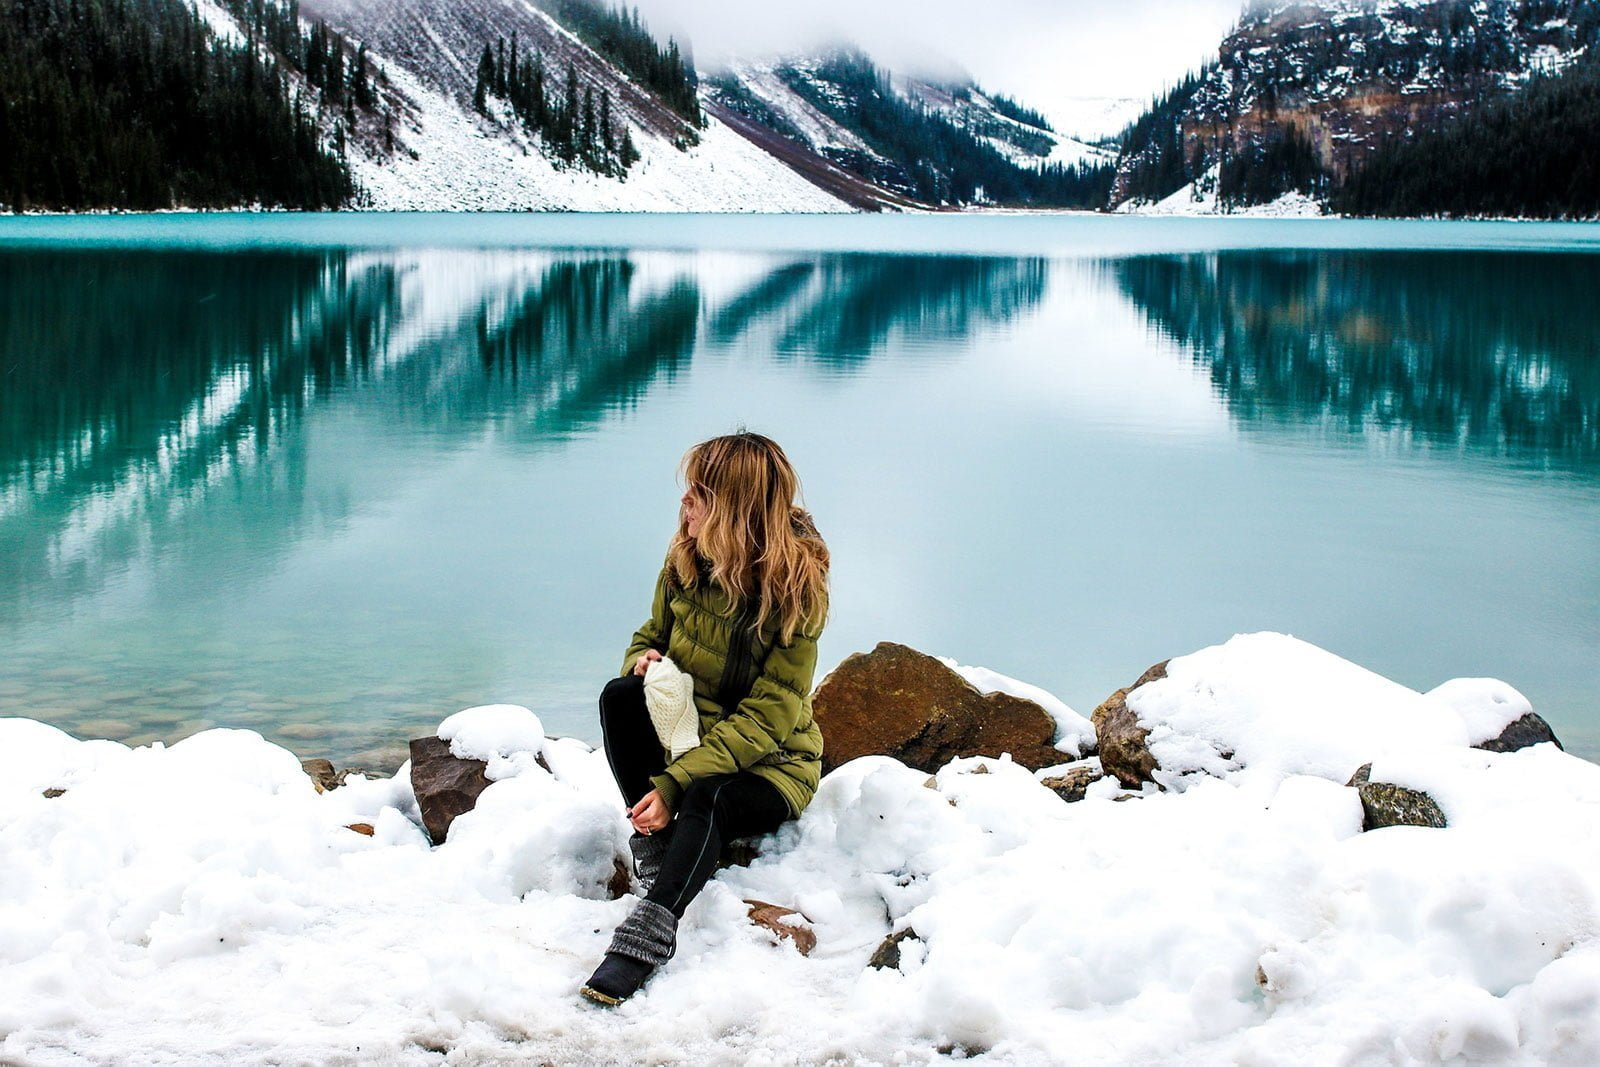 Winter sightseeing: Merino blend base layers for women are ideal